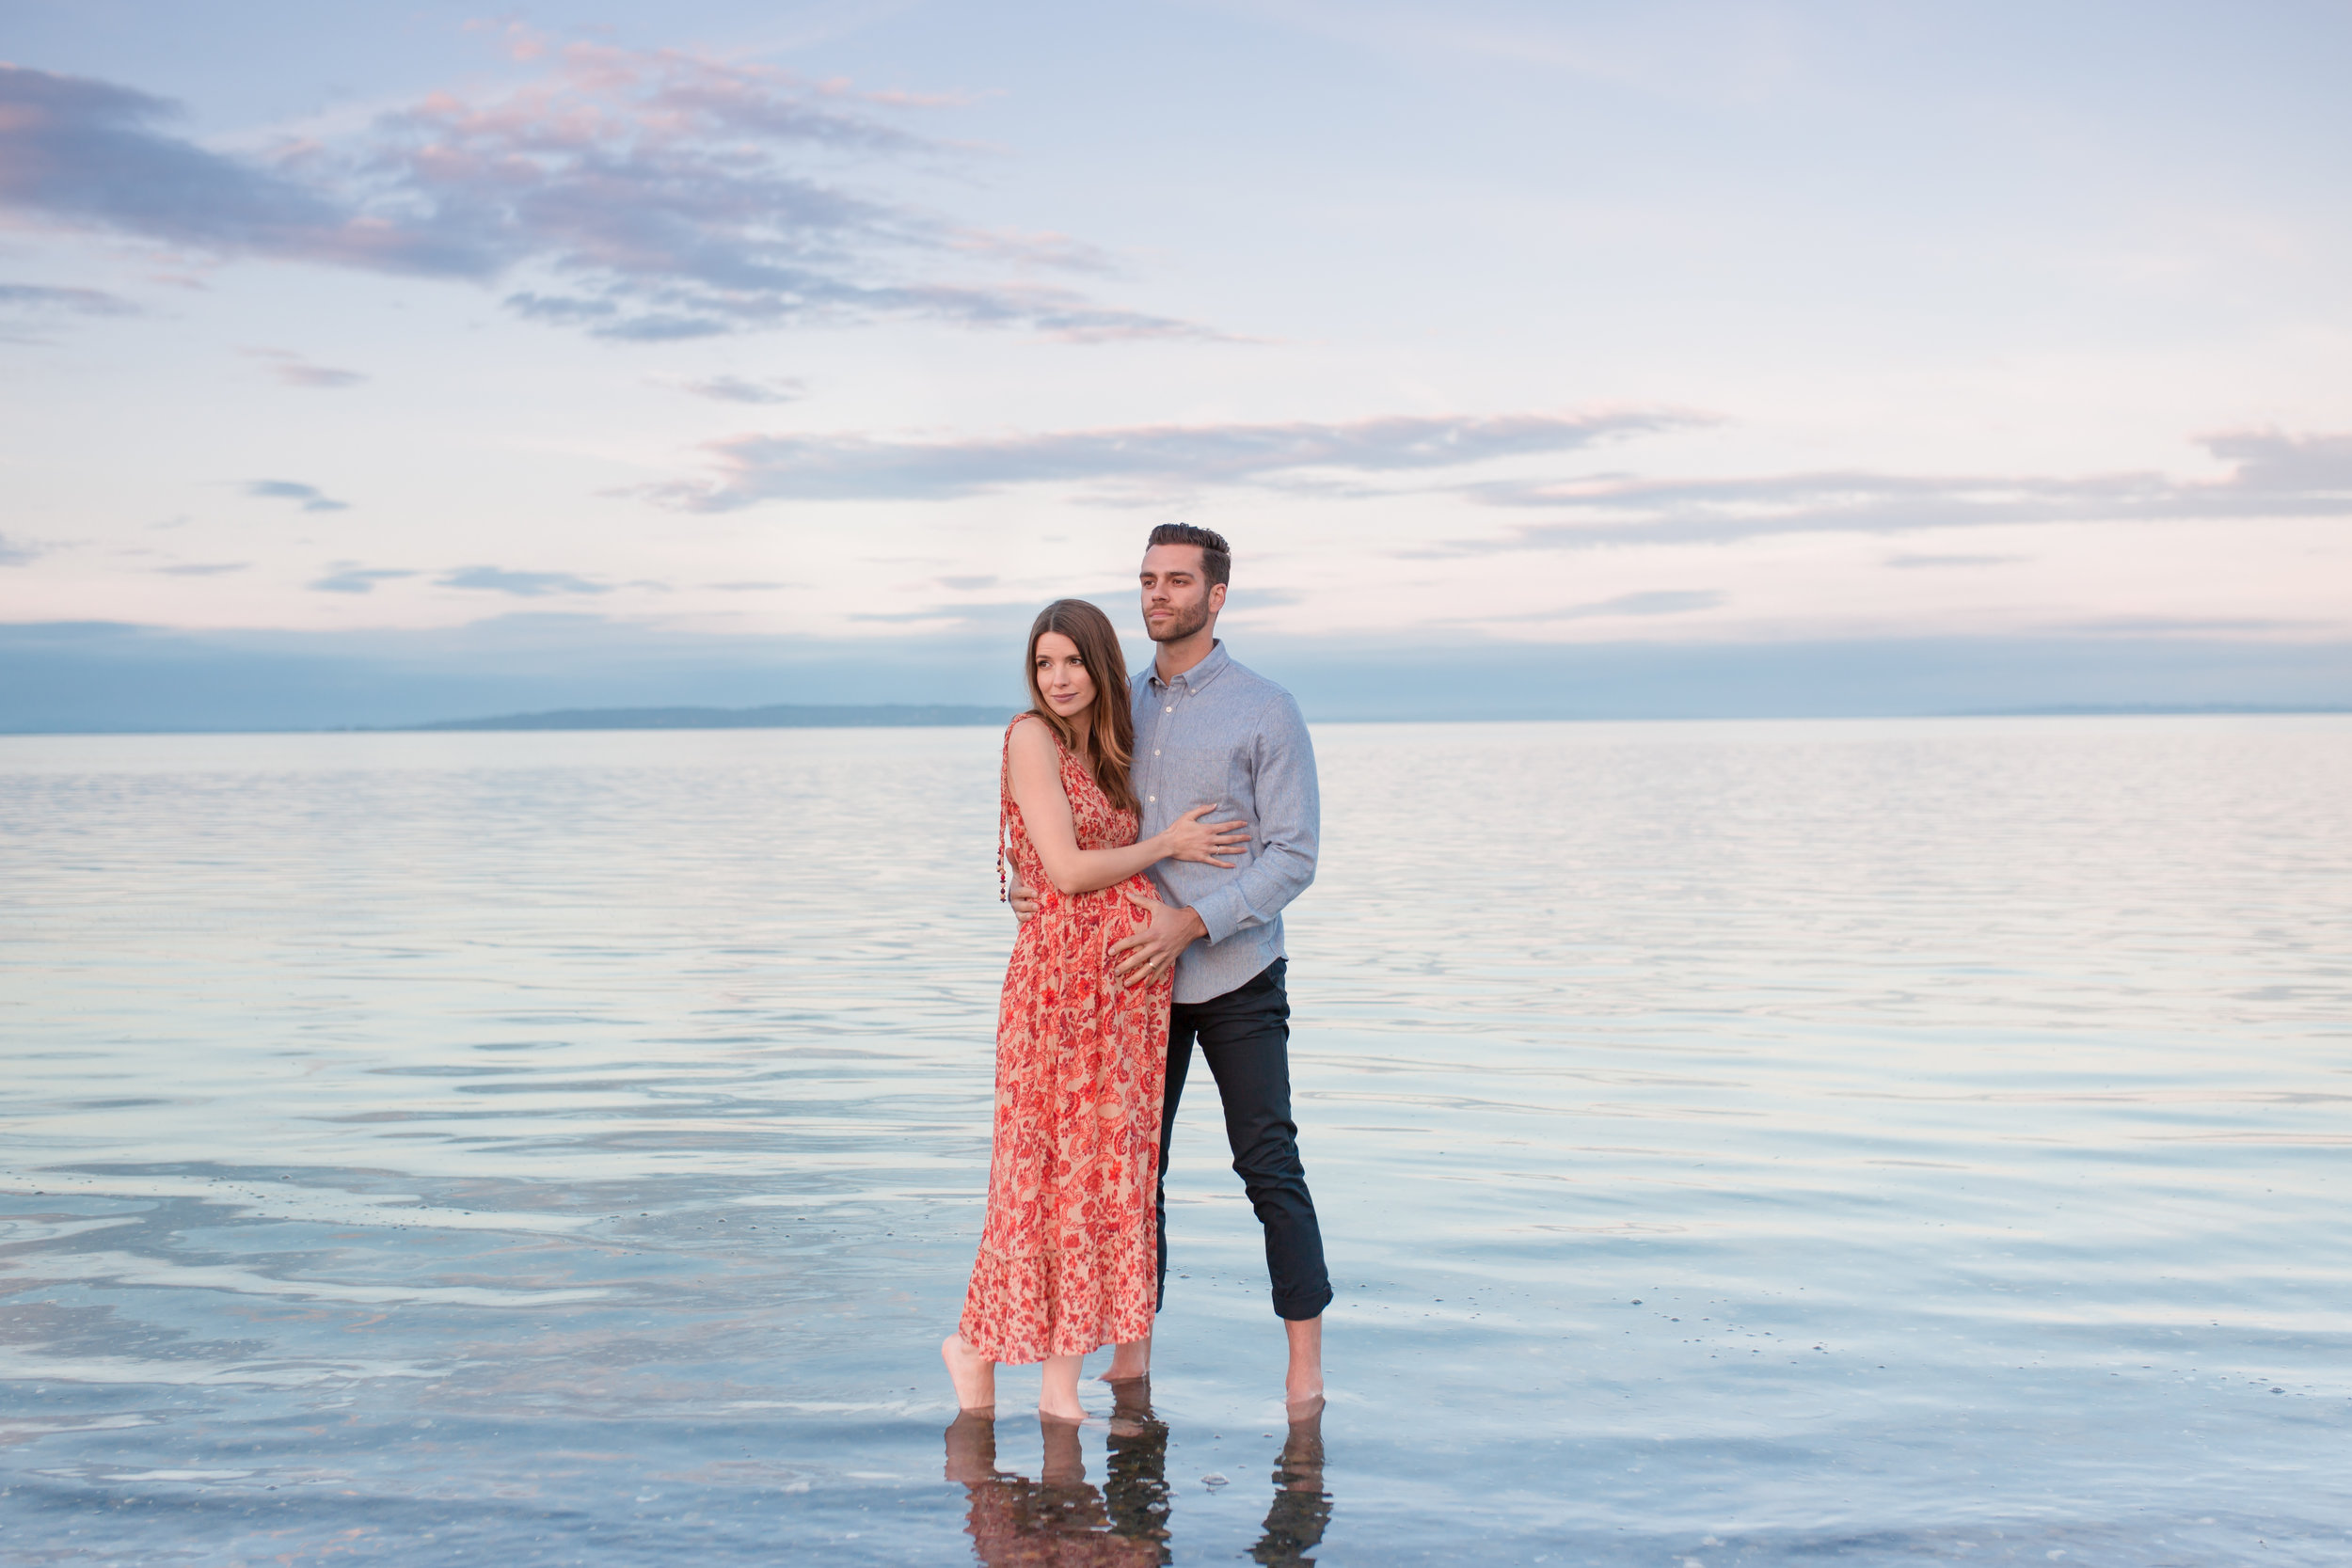 Centennial Beach Maternity Photos -13.jpg